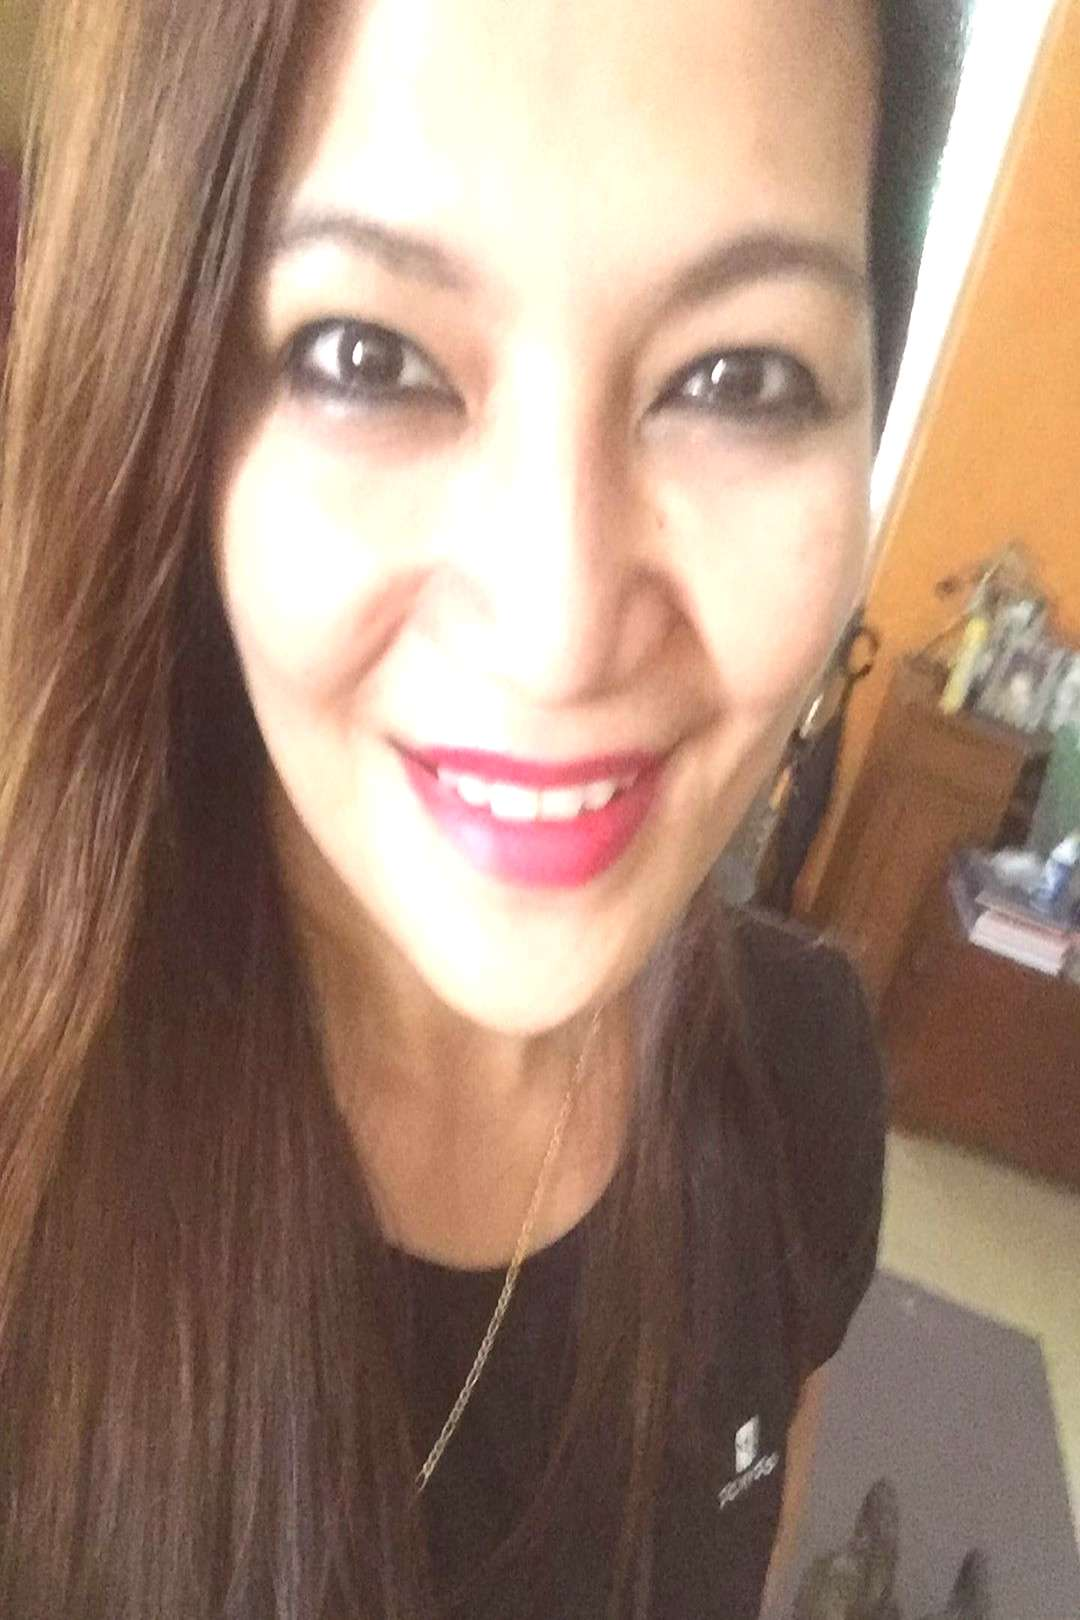 Betsy Ochosa on June 04 2020 1 person smiling selfie and closeup